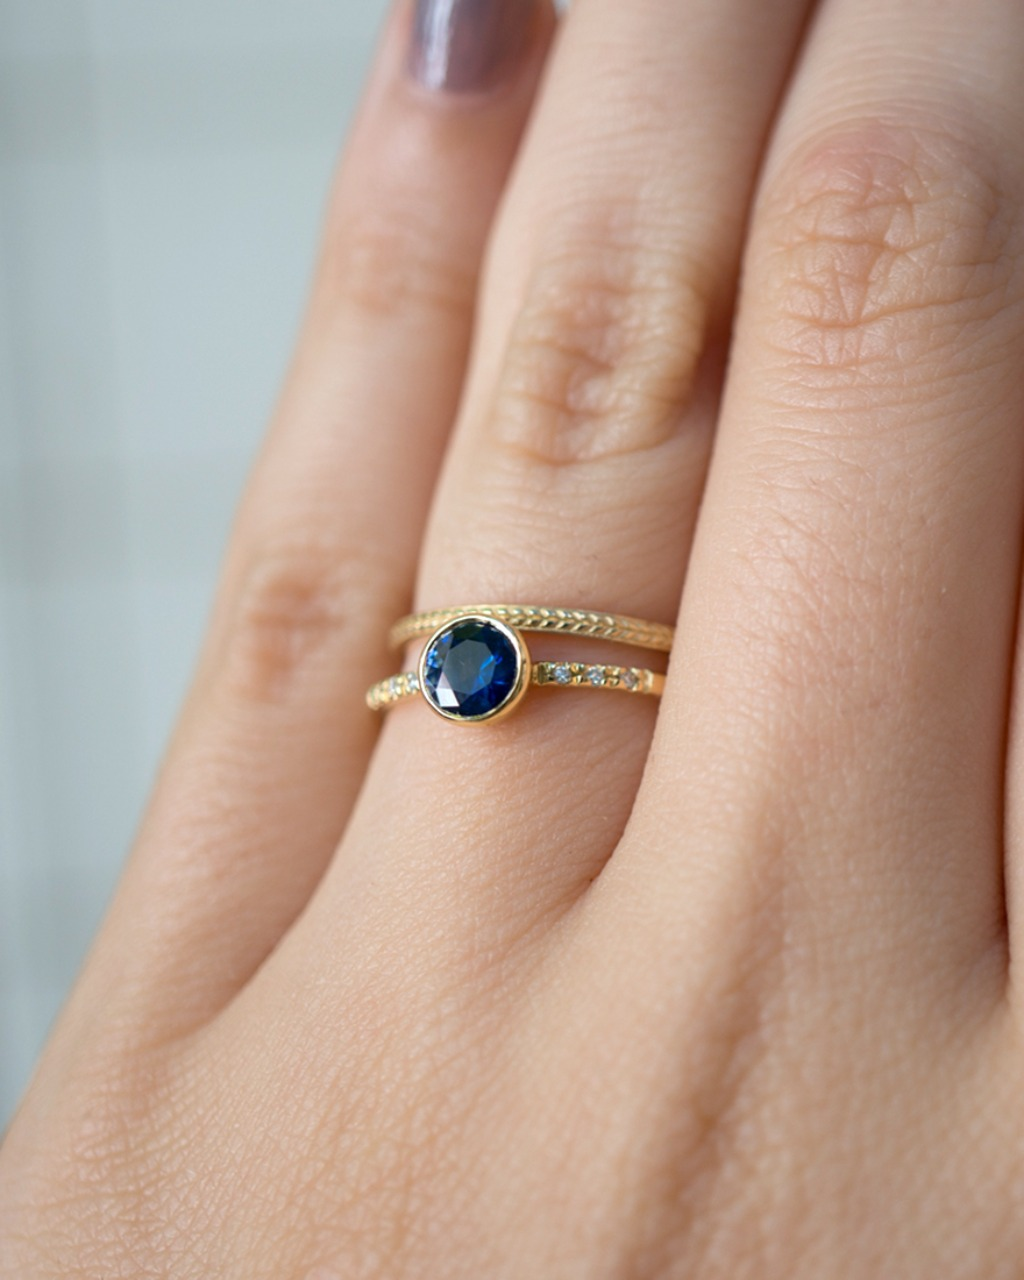 This Montana Sapphire has a beautiful saturated deep blue color with lighter toned sparkles. Set in our Maille bezel solitaire, the